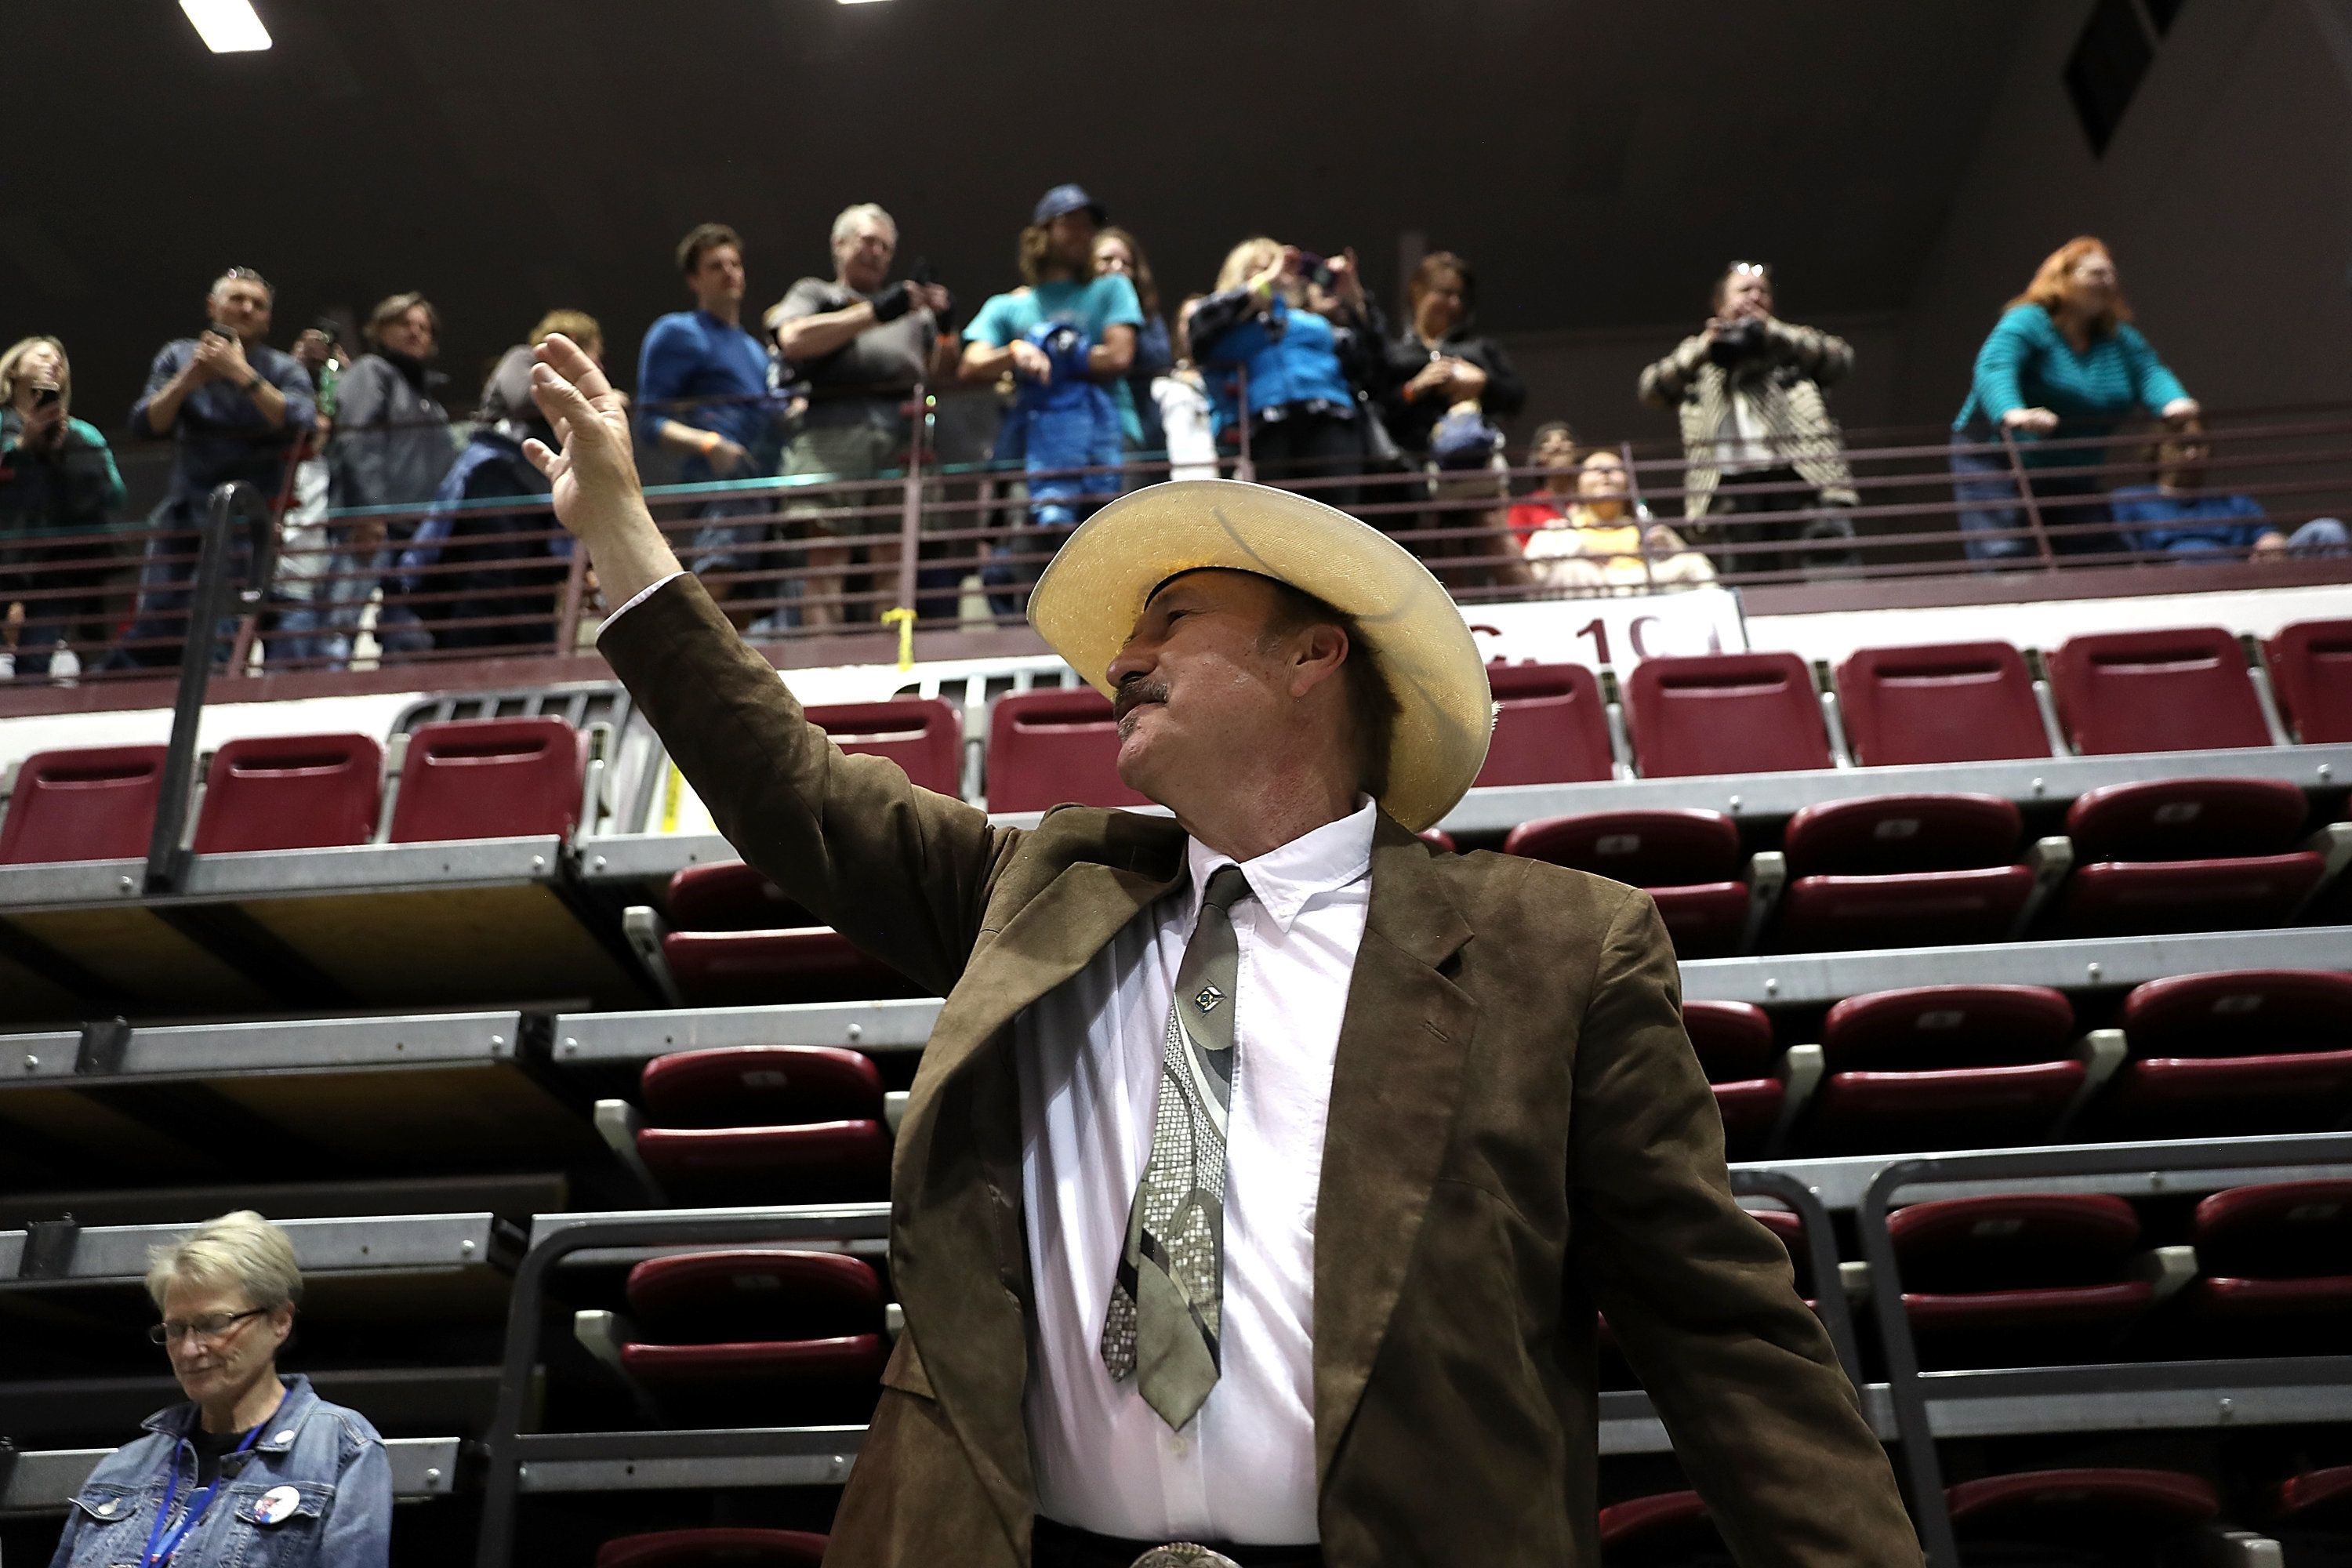 MISSOULA, MT - MAY 20:  Democratic U.S. Congressional candidate Rob Quist greets supporters during a campaign rally with U.S. Sen. Bernie Sanders (I-VT) at the University of Montana on May 20, 2017 in Missoula, Montana. Rob Quist is campaigning with U.S. Sen. Bernie Sanders ahead of a May 25 special election to fill Montana's single congressional seat. Quist is in a tight race against republican Greg Gianforte.  (Photo by Justin Sullivan/Getty Images)